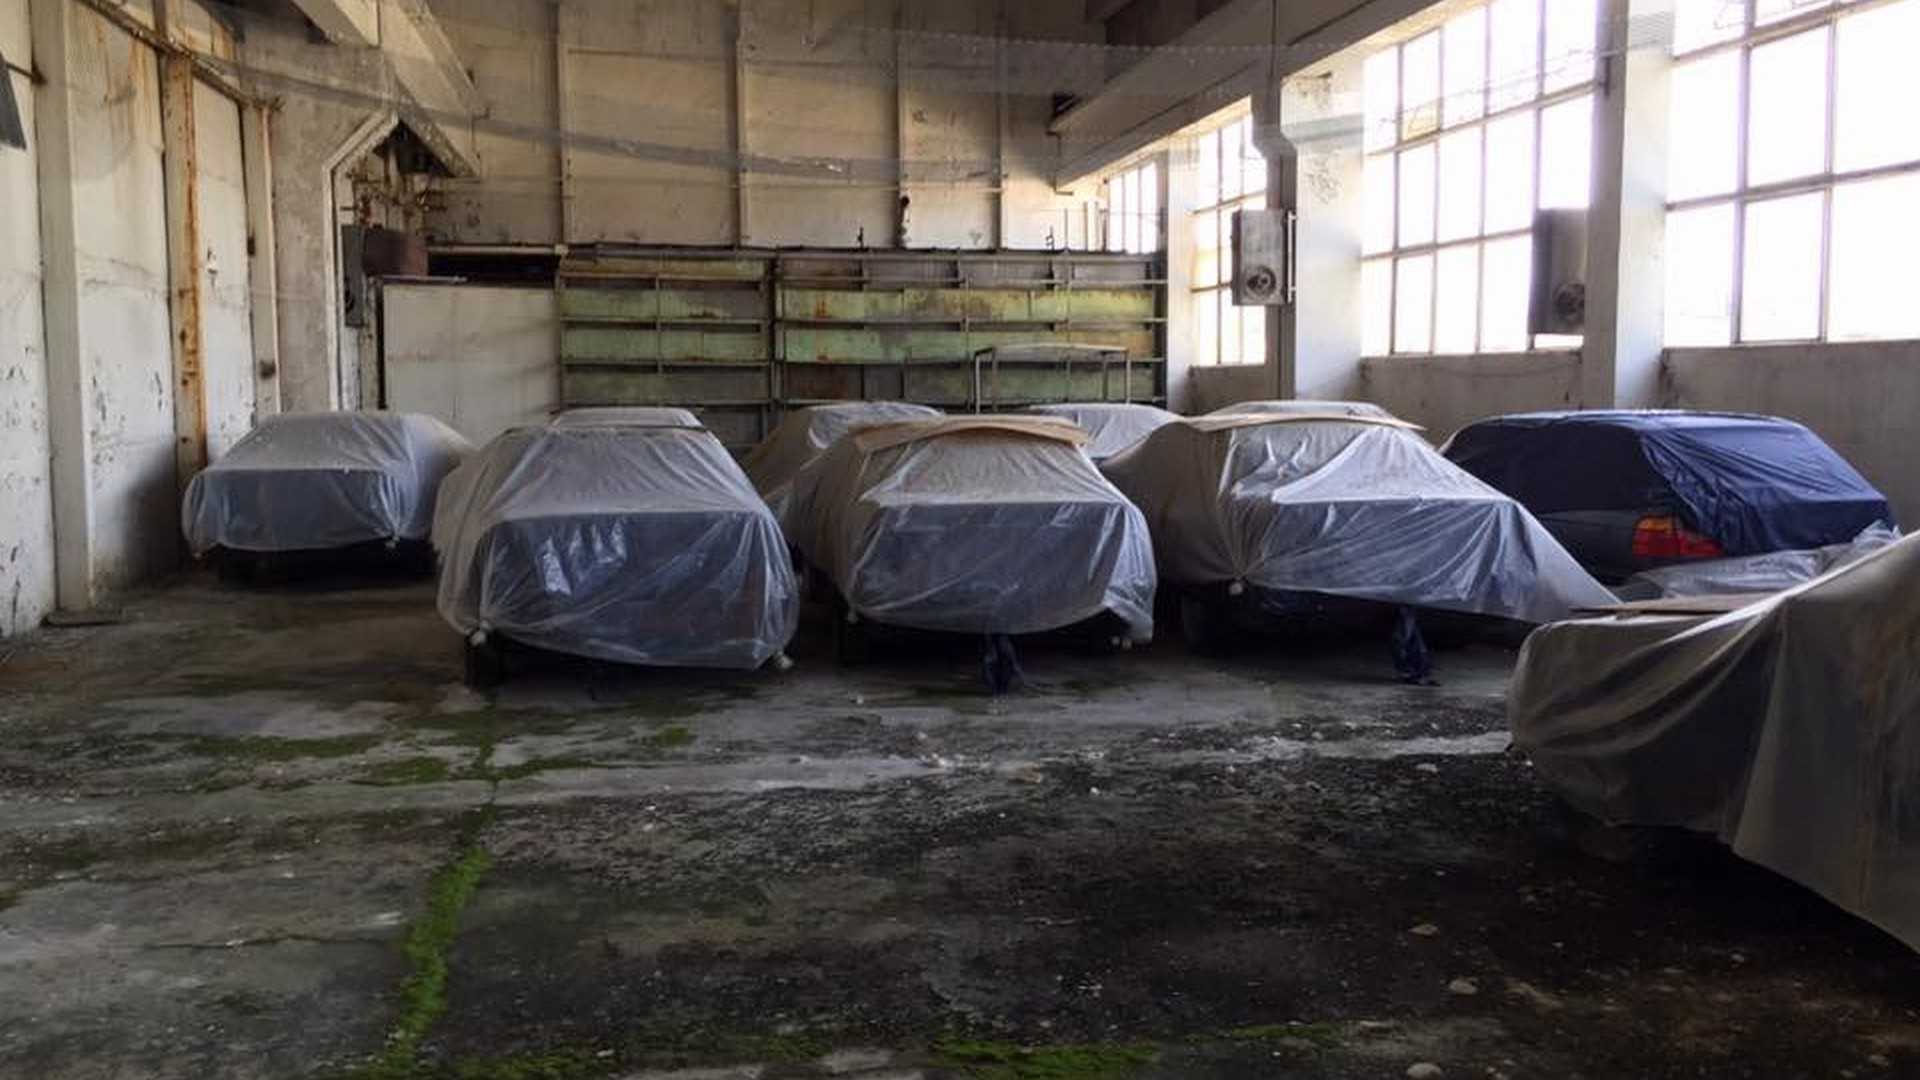 BMWs under car covers